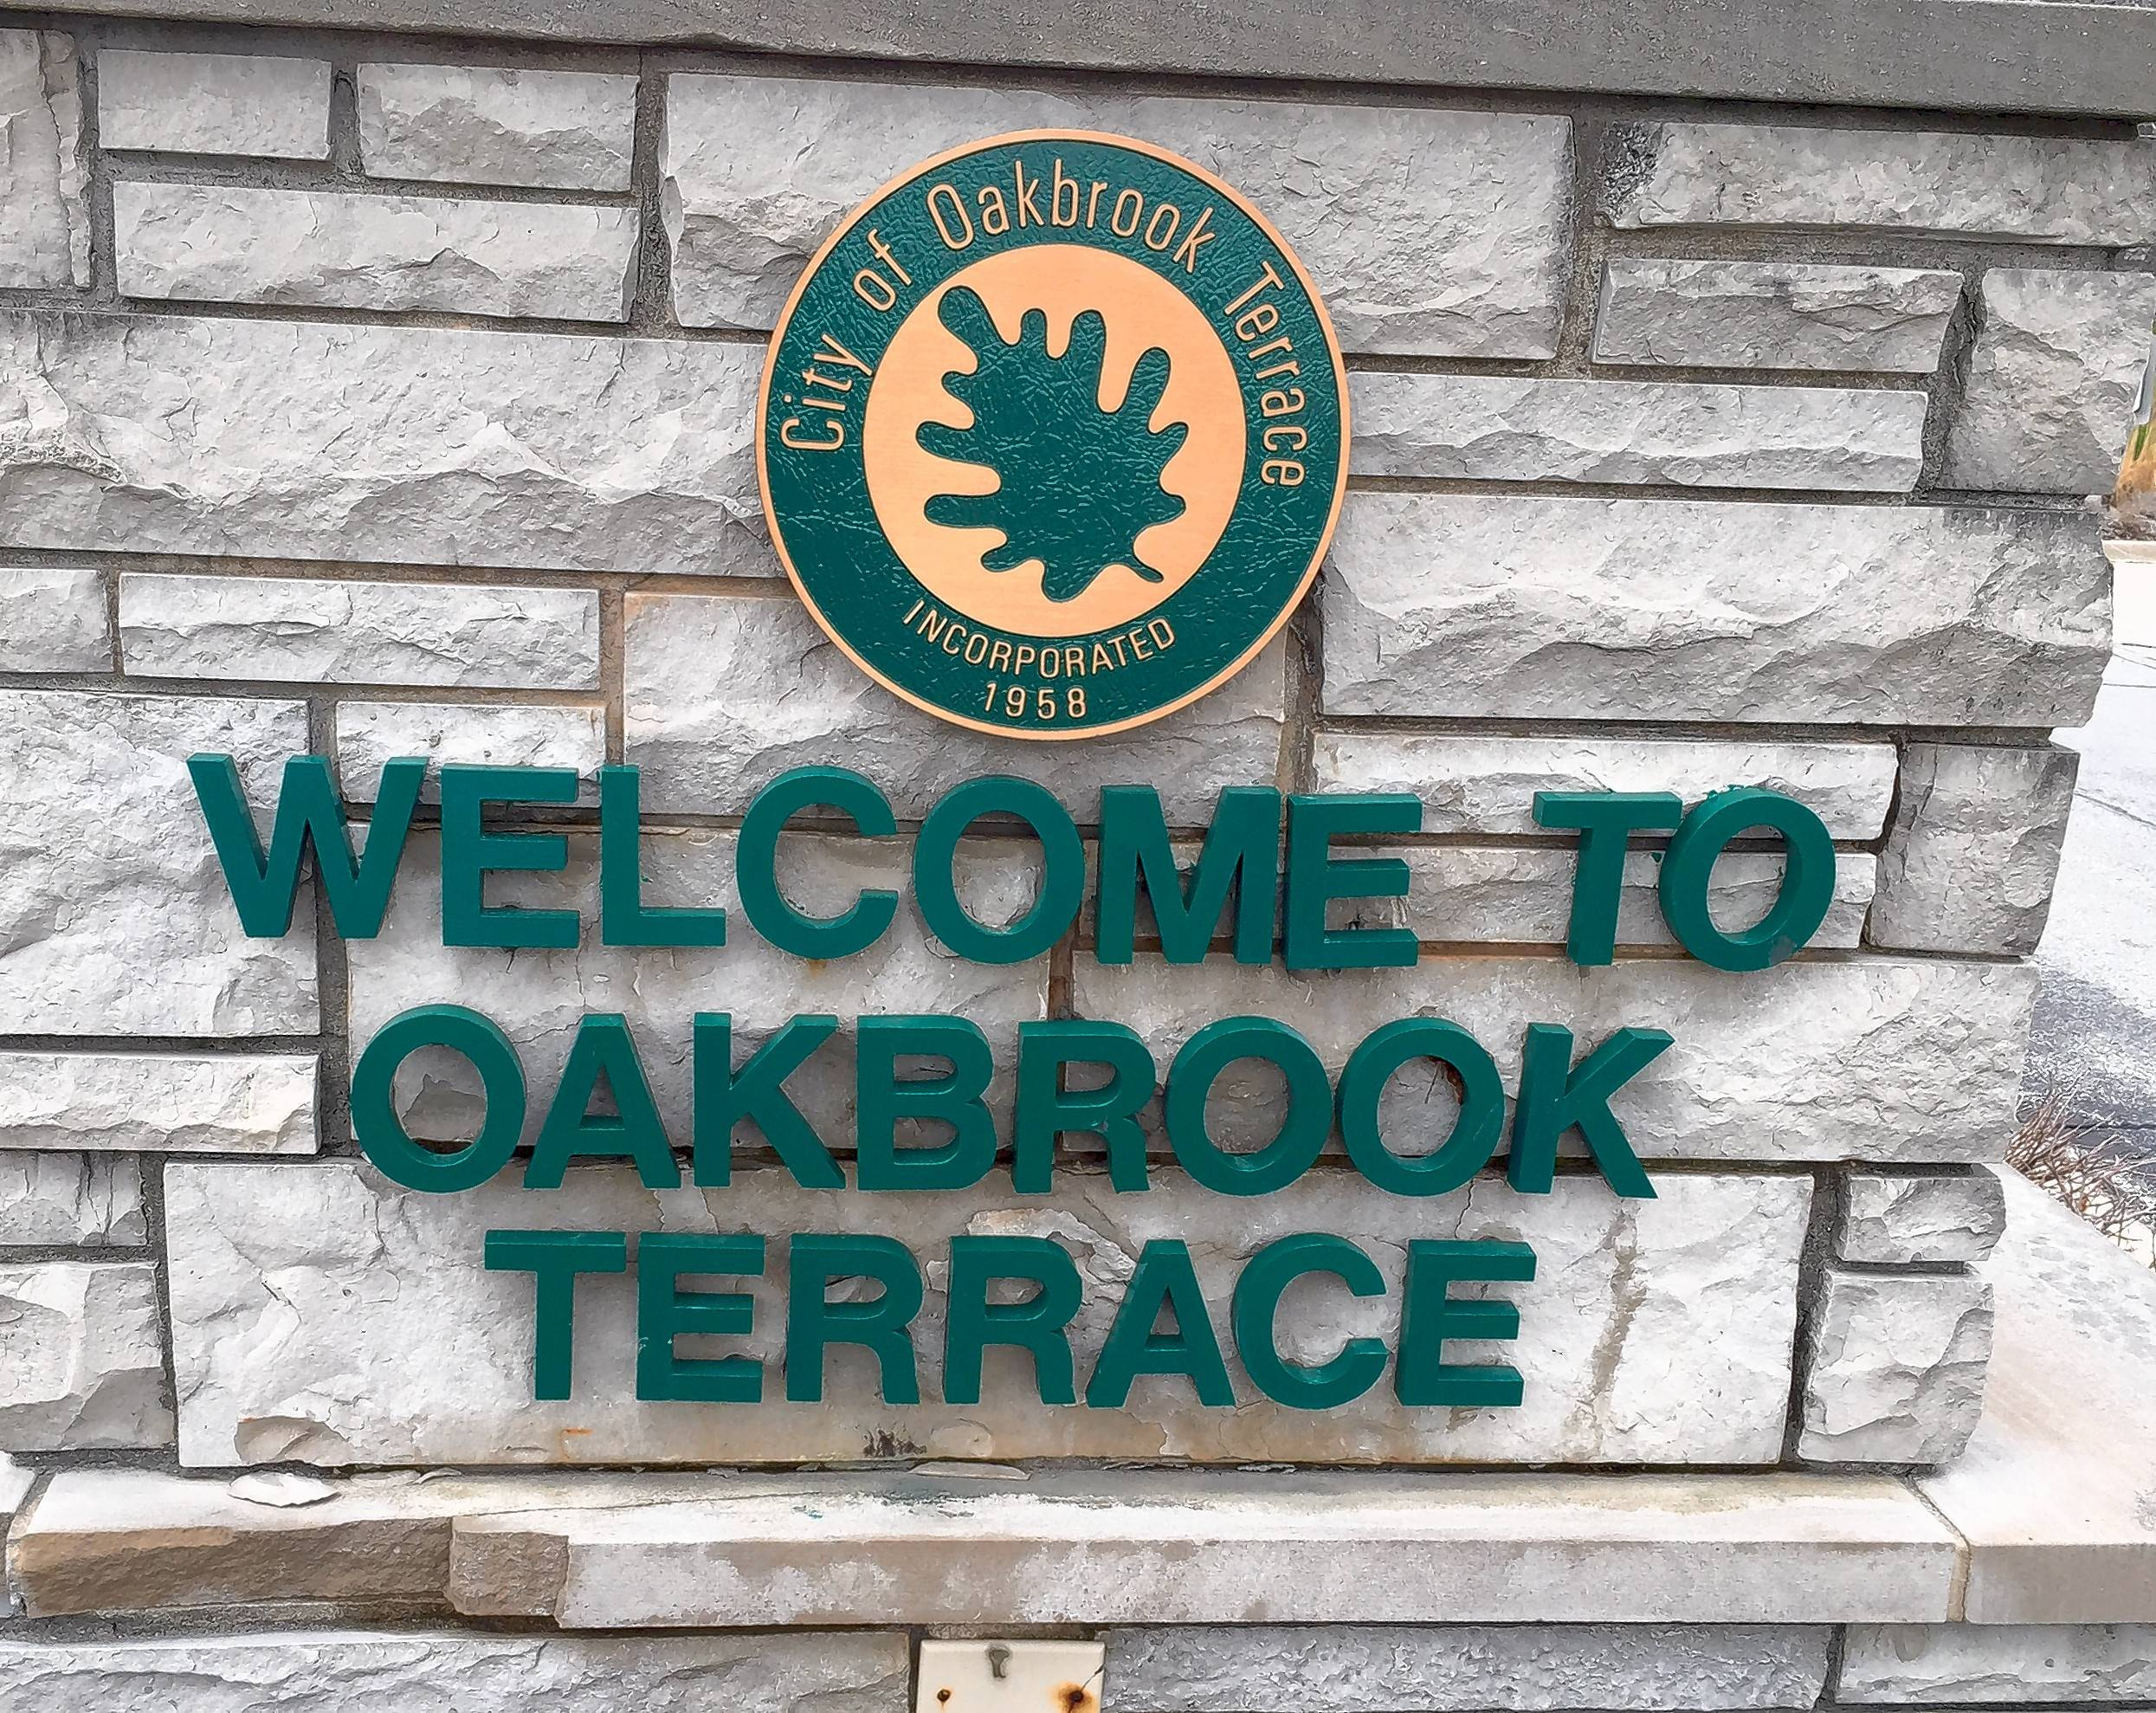 Oakbrook Terrace was first known as Utopia in the 1880s.